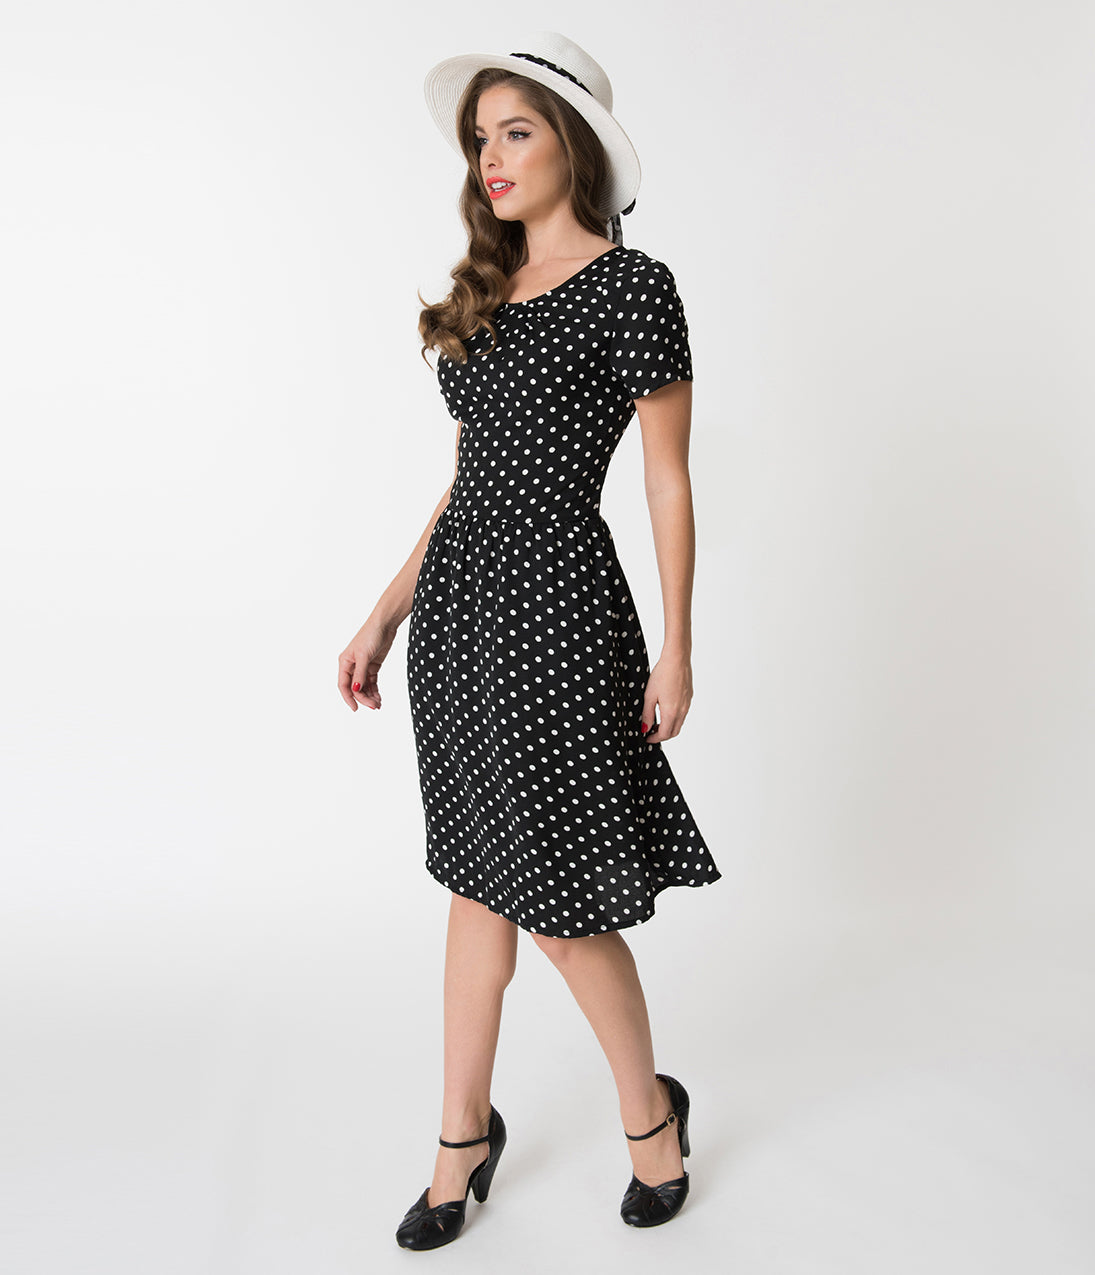 Polka Dot Dresses: 20s, 30s, 40s, 50s, 60s 1950S Style Black  White Polka Dot Short Sleeve Elizabeth Swing Dress $58.00 AT vintagedancer.com